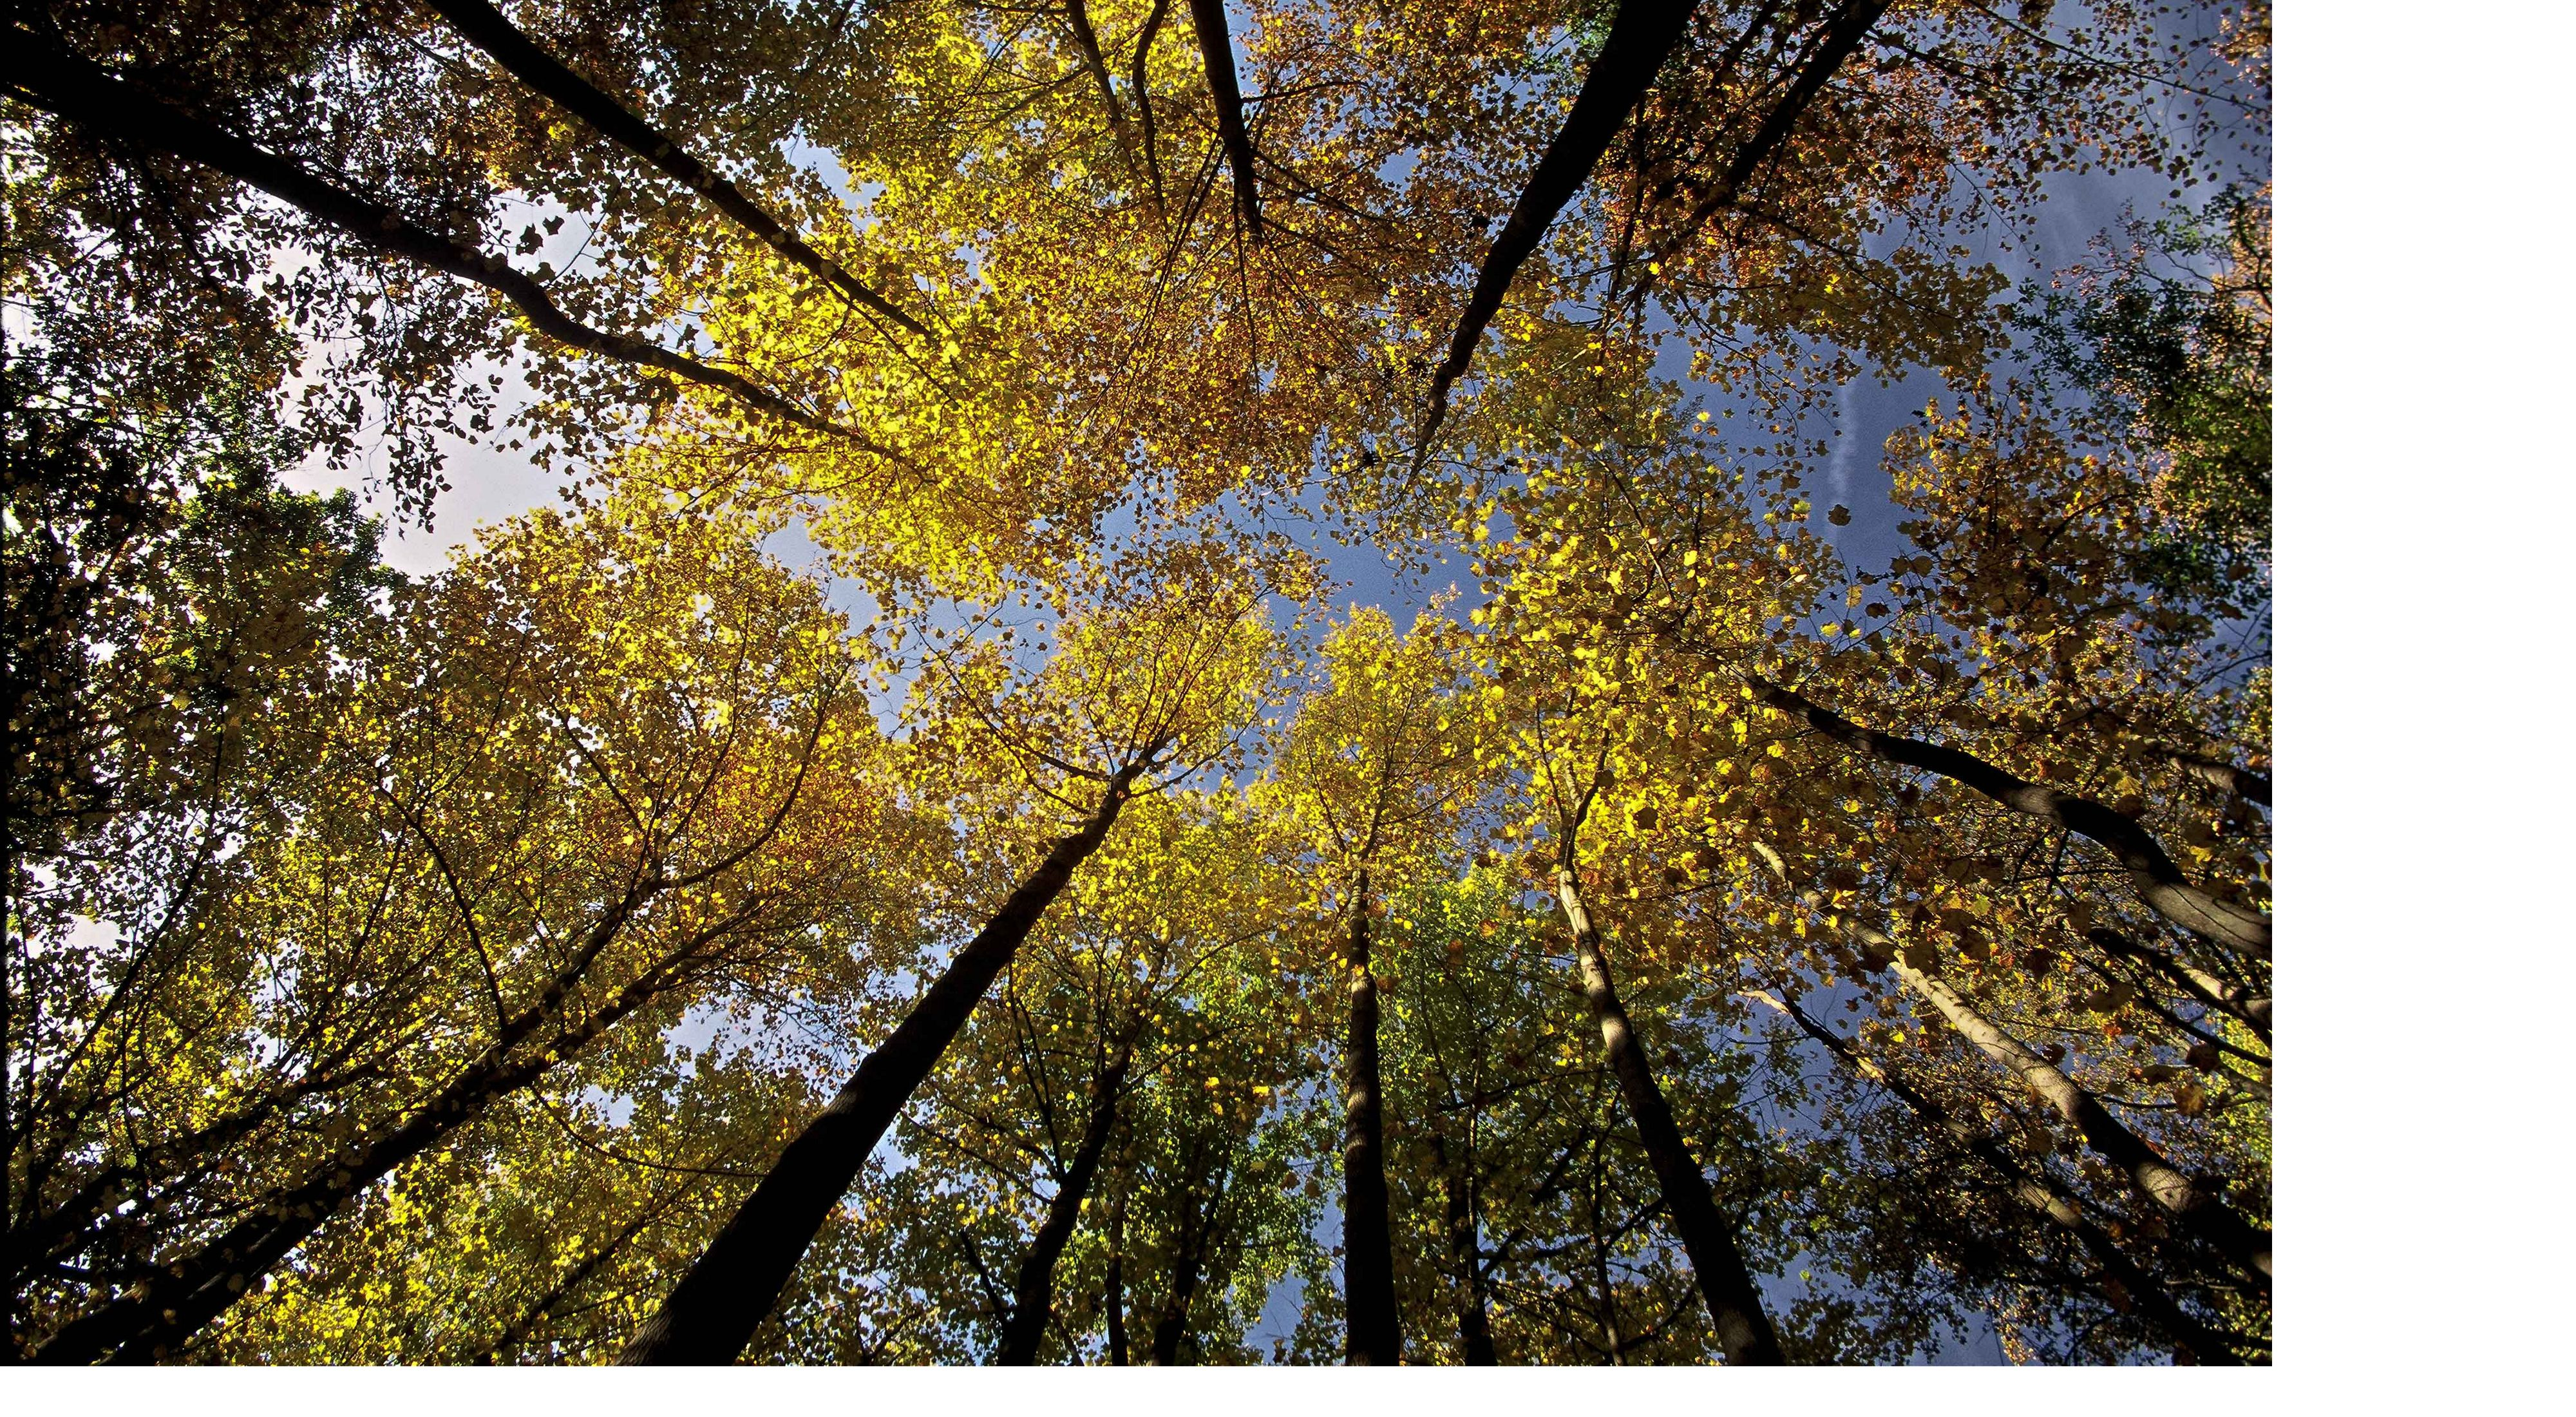 Photo of looking up into a tree canopy.